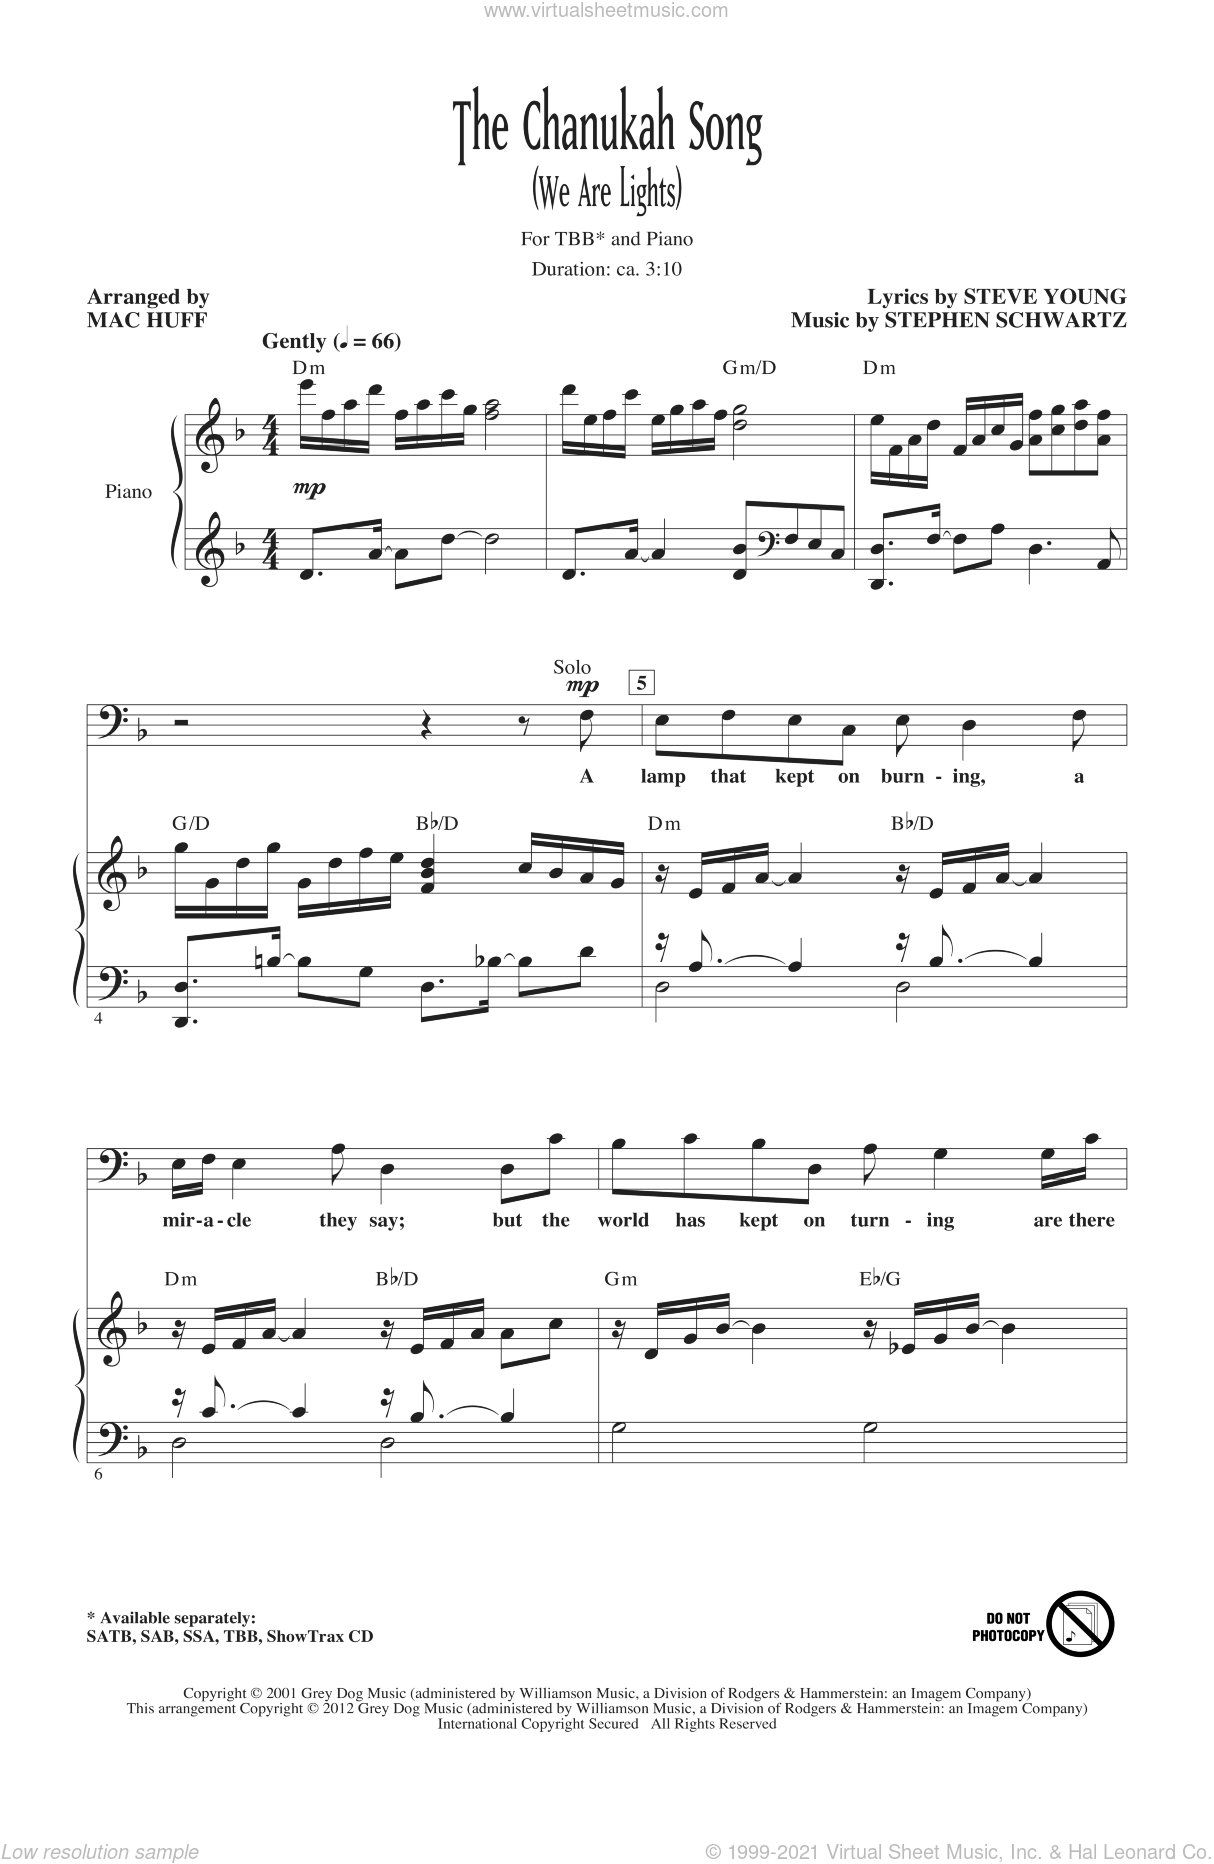 The Chanukah Song (We Are Lights) sheet music for choir (TBB: tenor, bass) by Stephen Schwartz, Steve Young and Mac Huff, intermediate skill level